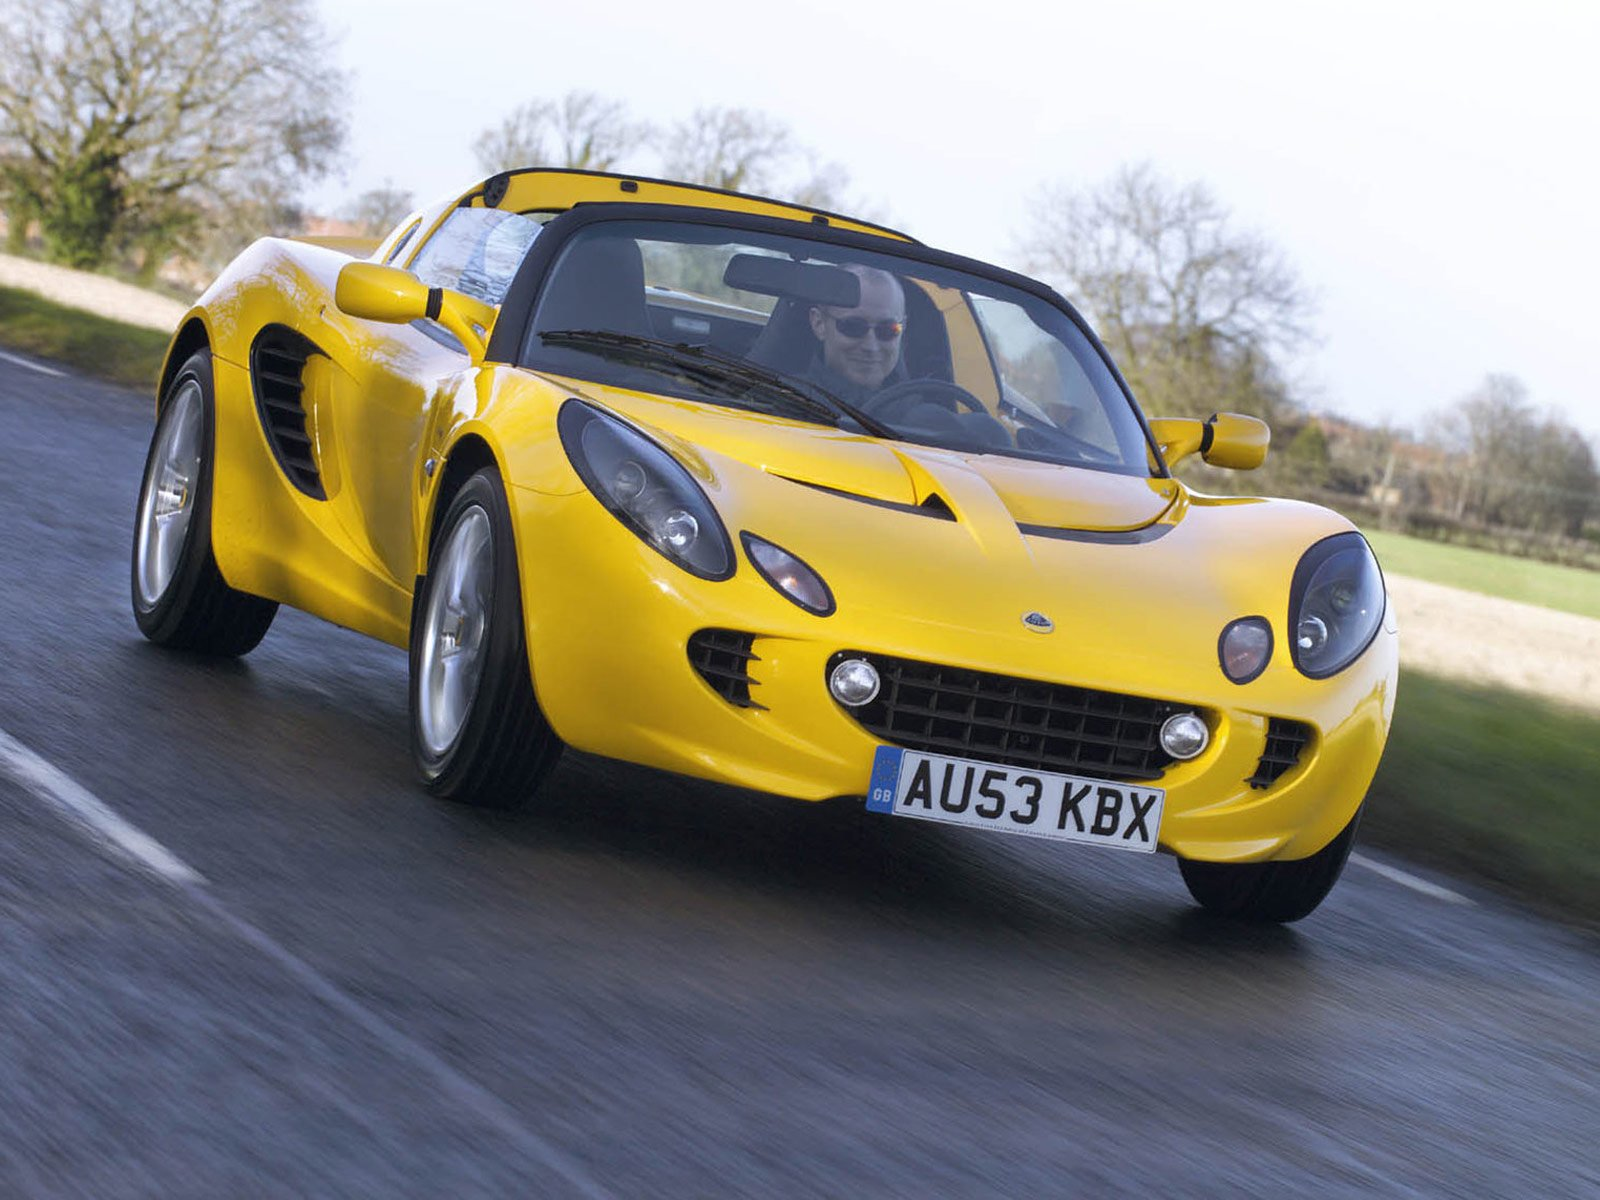 Latest 2005 Lotus Elise Lotus Car Wallpapers Free Download